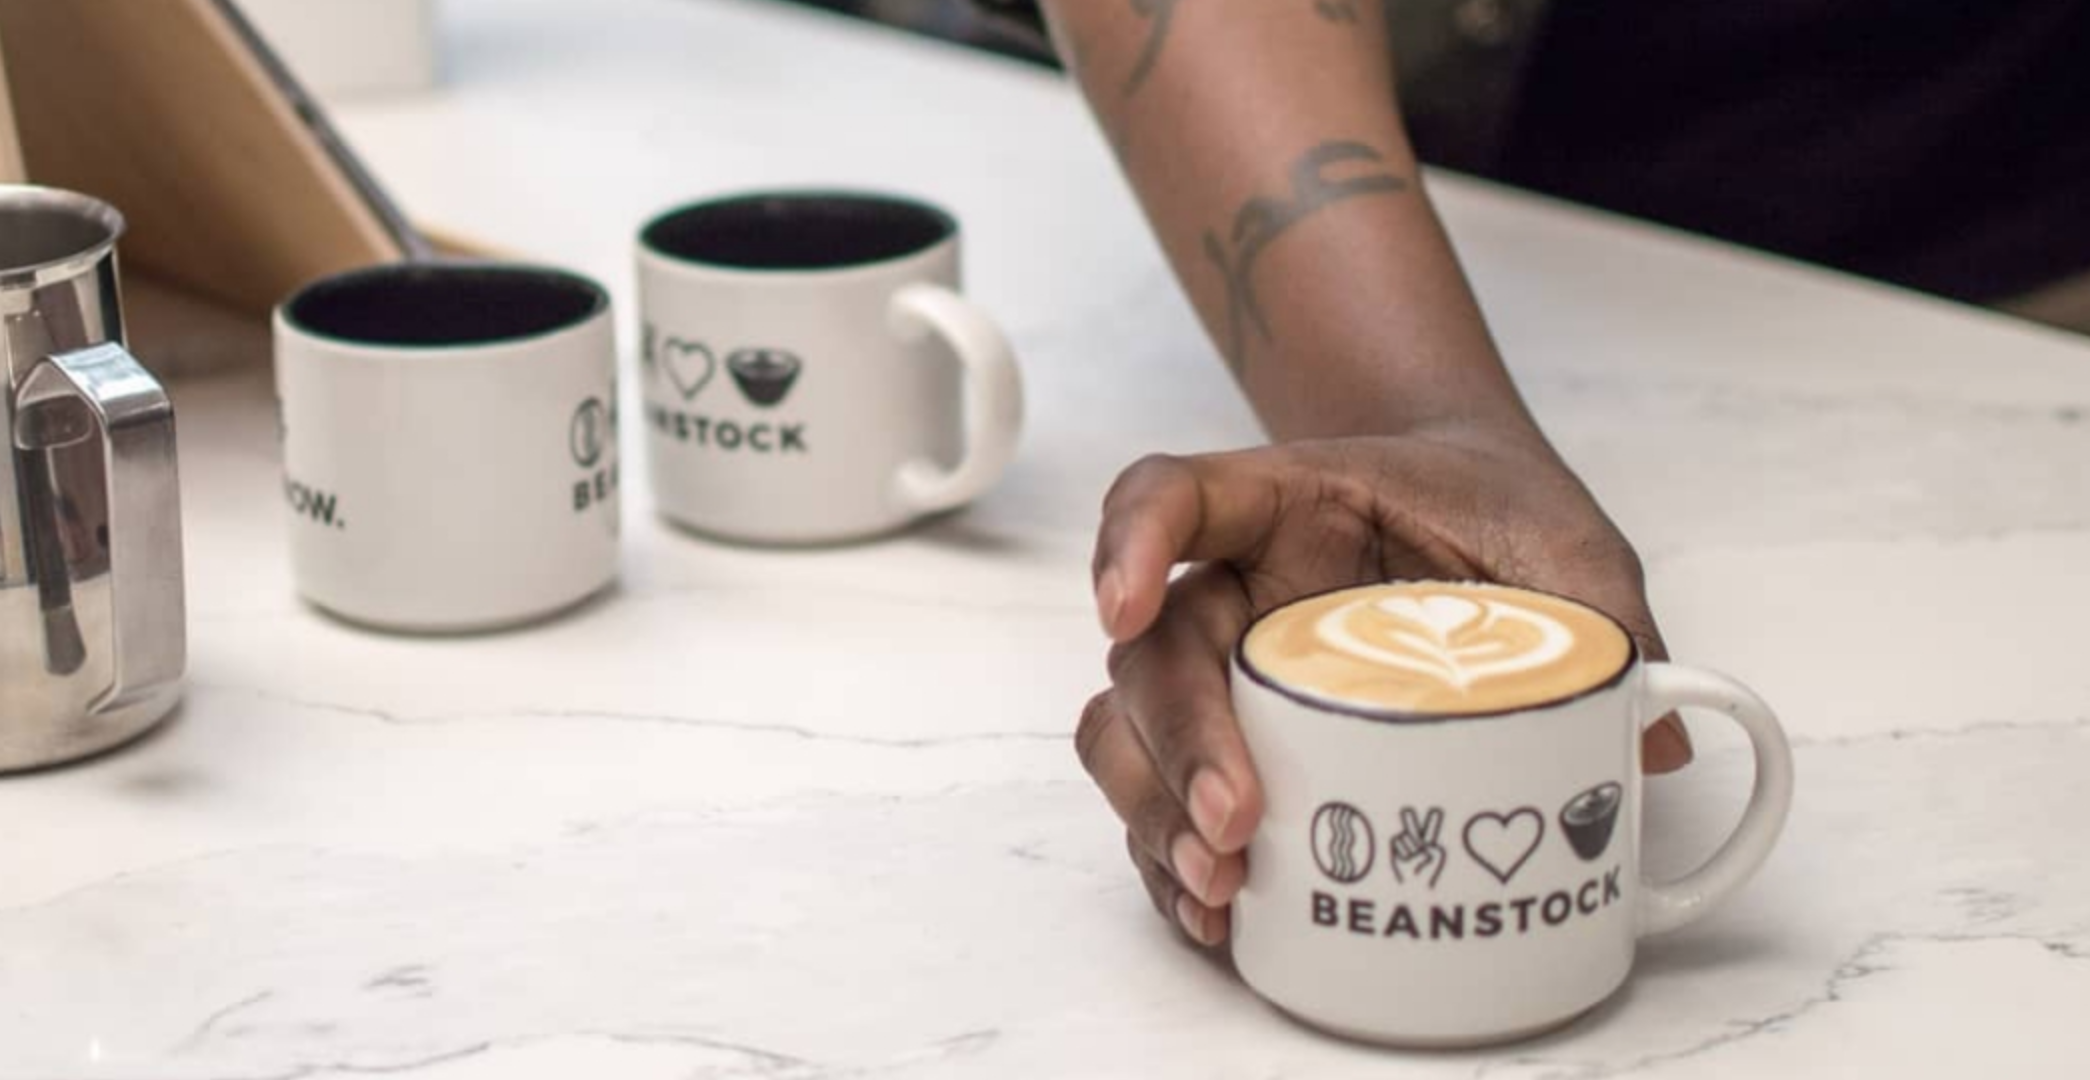 Canada's top baristas hosting coffee classes - Daily hive, 5.14.2018